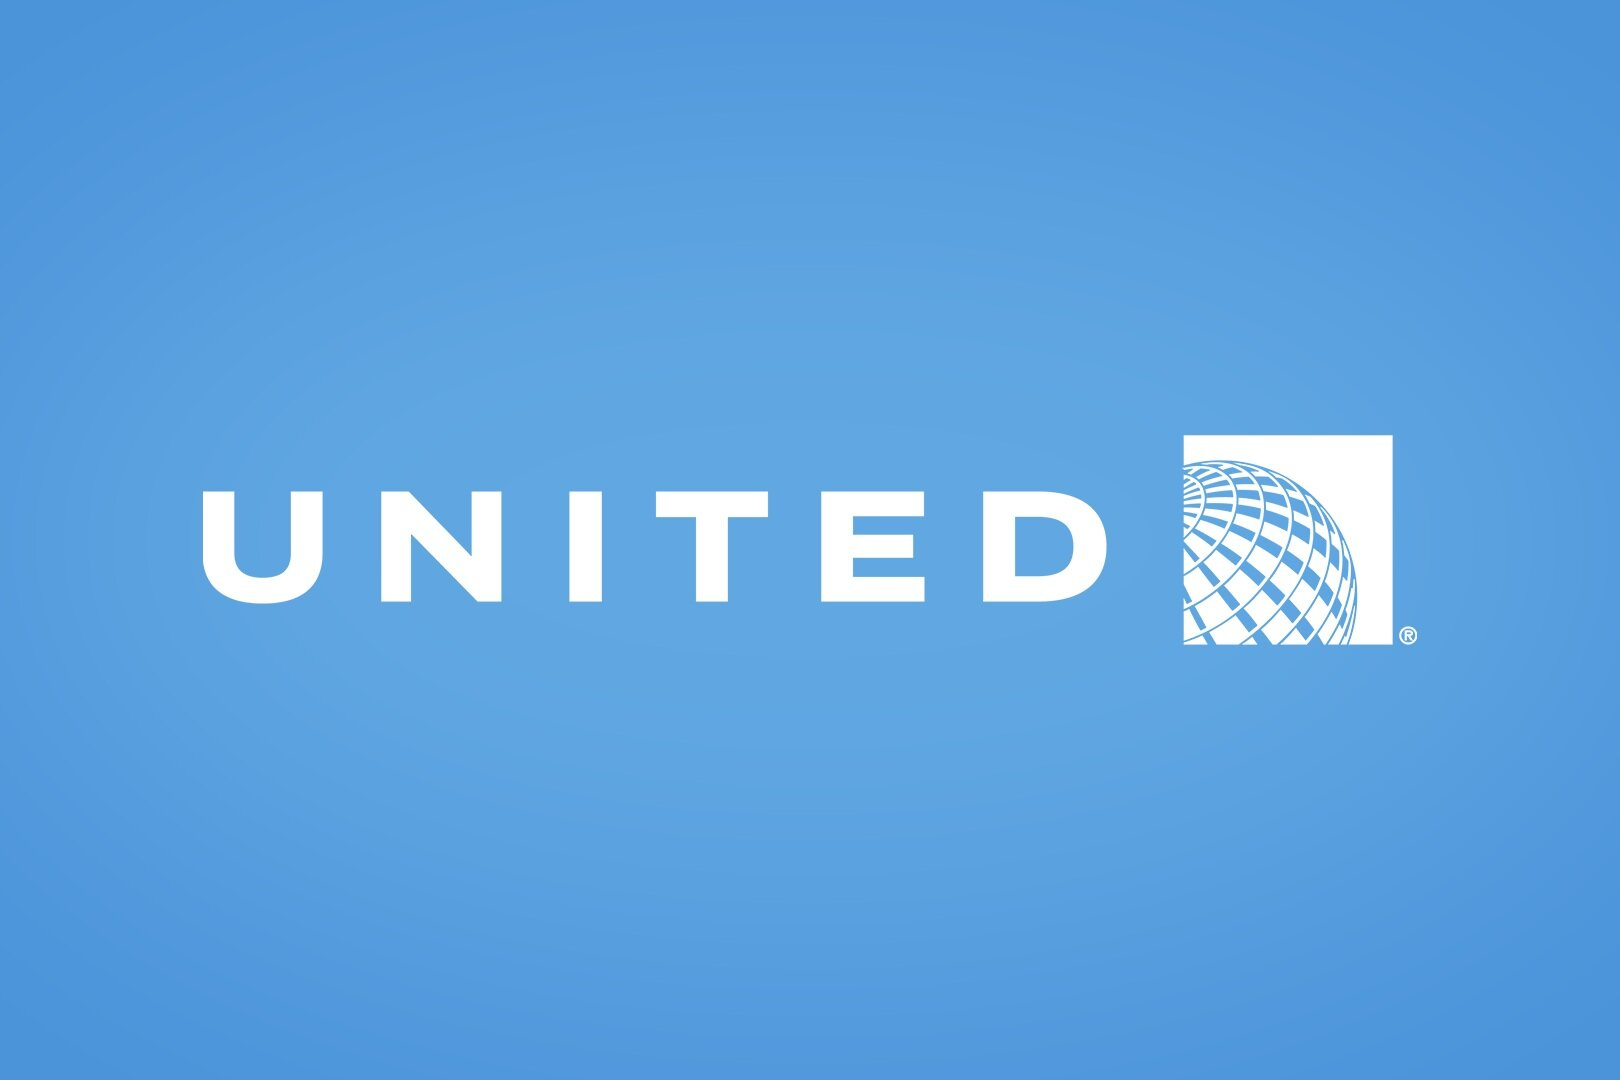 Mobile App Audit - Auditing United's mobile app and competitors, I identified touch-points to integrate Chase promotional messaging to acquire new credit card members.